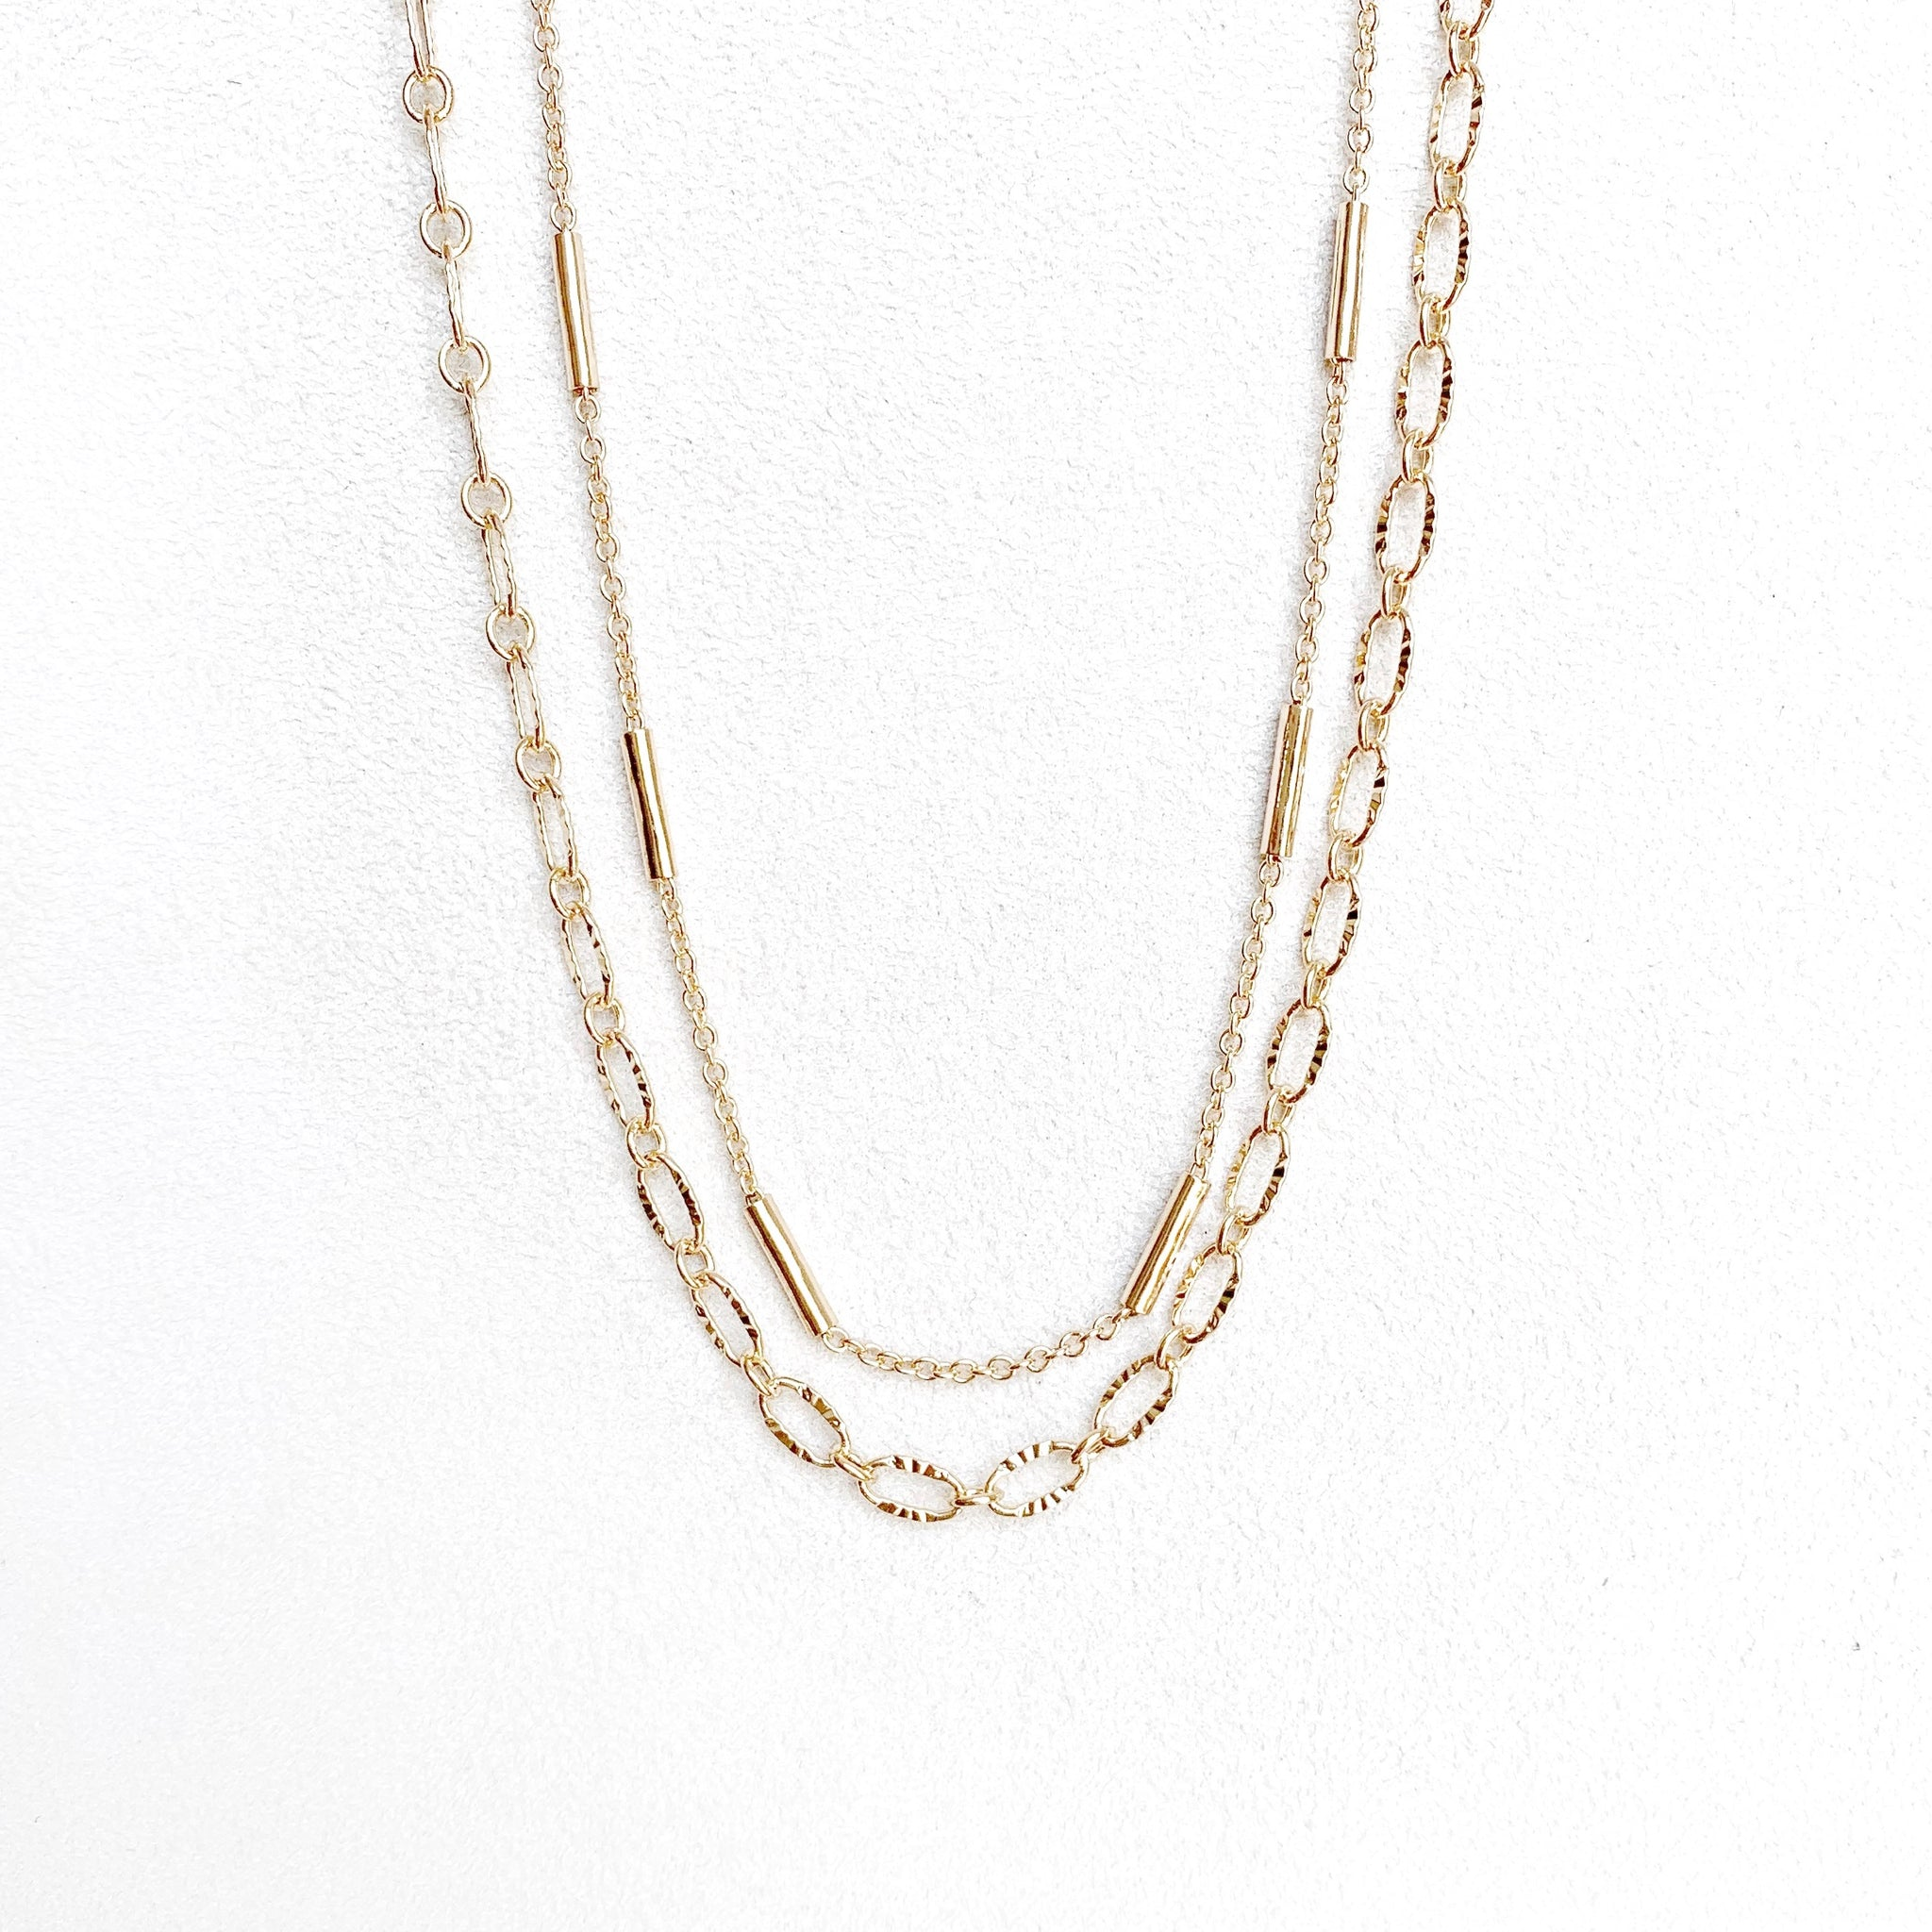 Presley Pre-Layered Chain Necklace